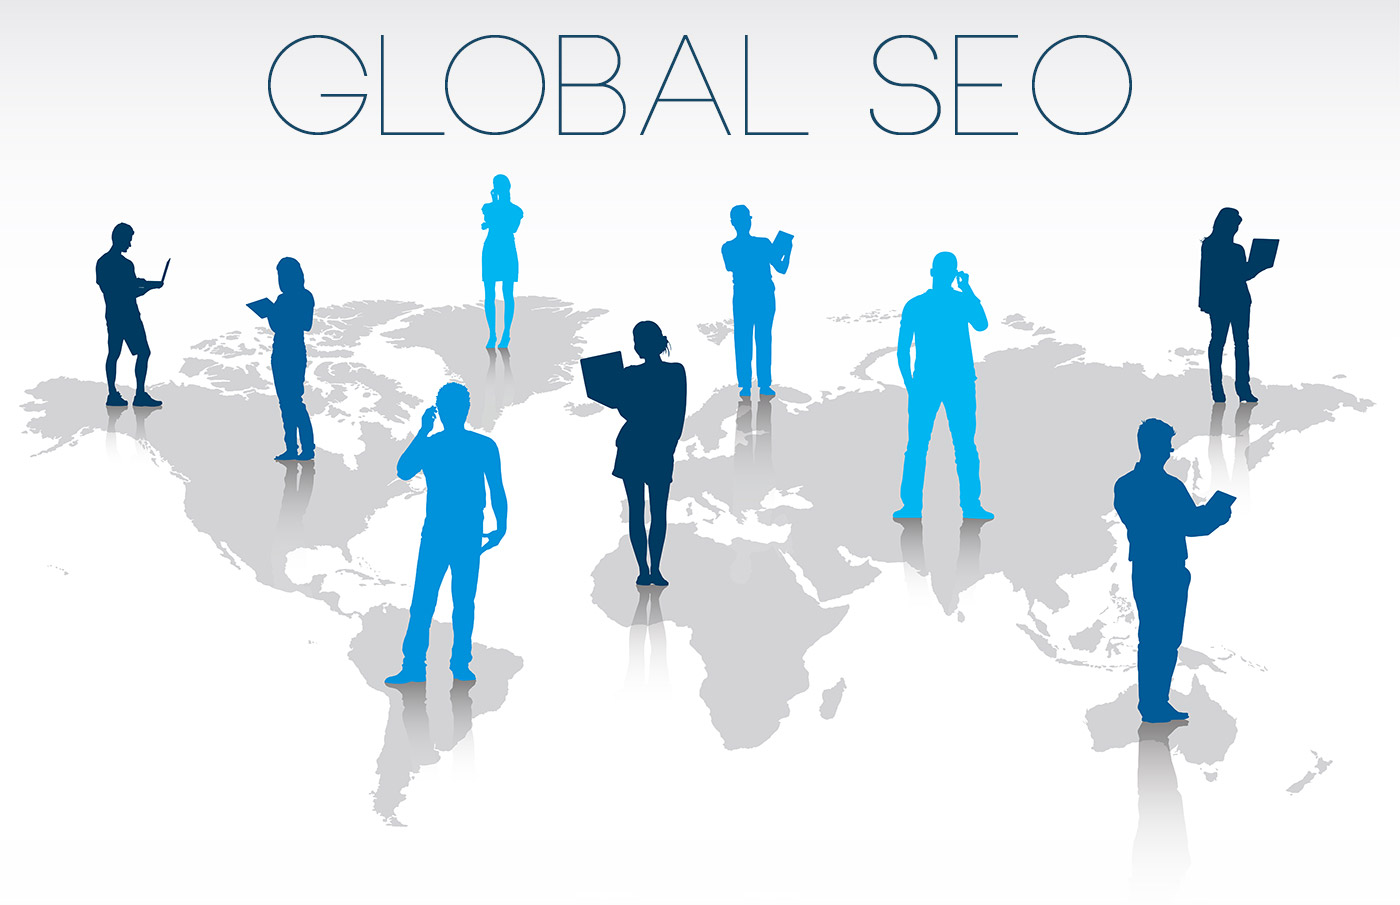 global-seo Global SEO - Make it Active, LLC